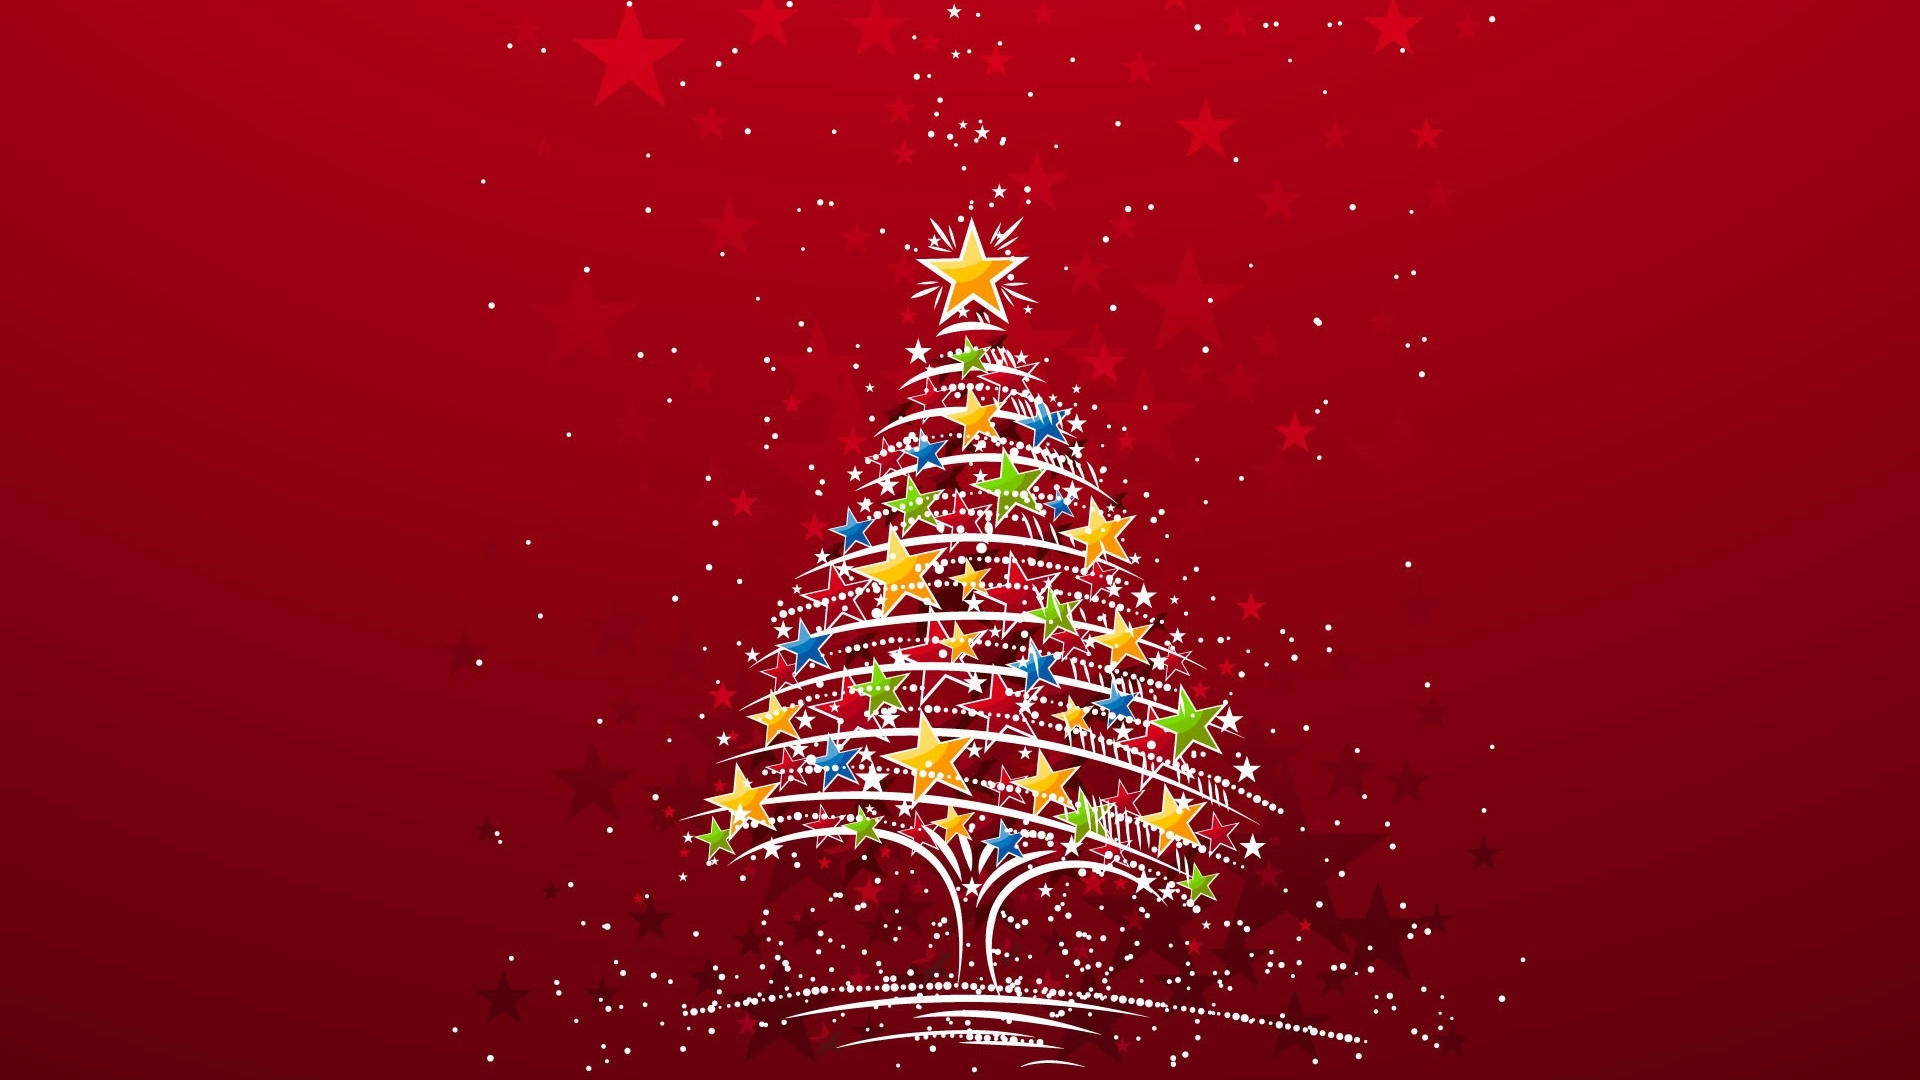 Beautiful christmas tree wallpaper - Beautiful Christmas Tree Wallpaper 1920x1080